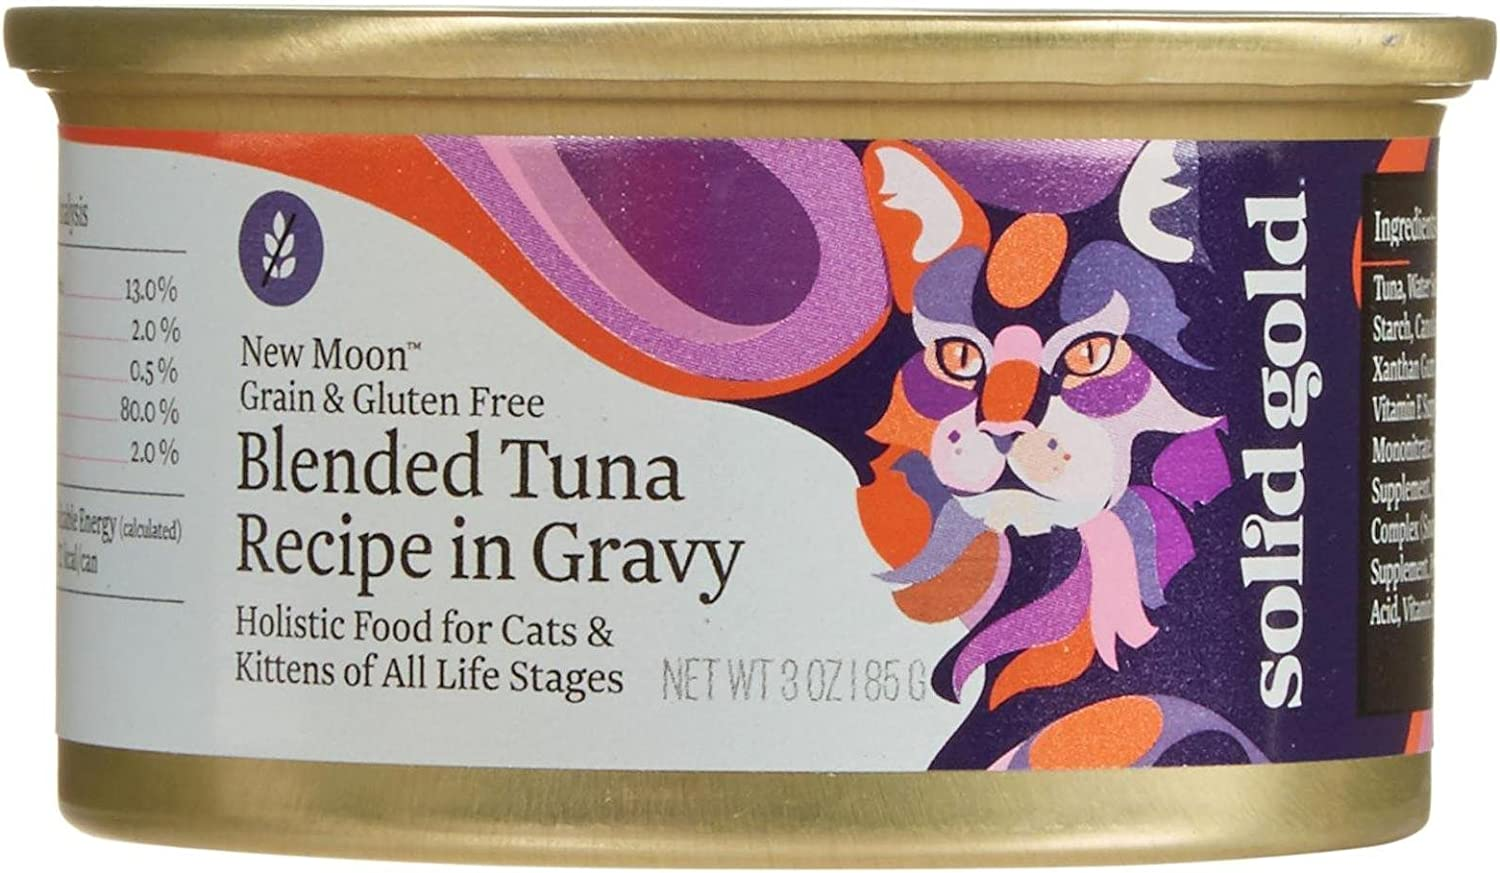 Solid Gold New Moon Holistic Wet Cat Food, Blended Tuna Recipe In Gravy, 3 Oz Can, 12 Count